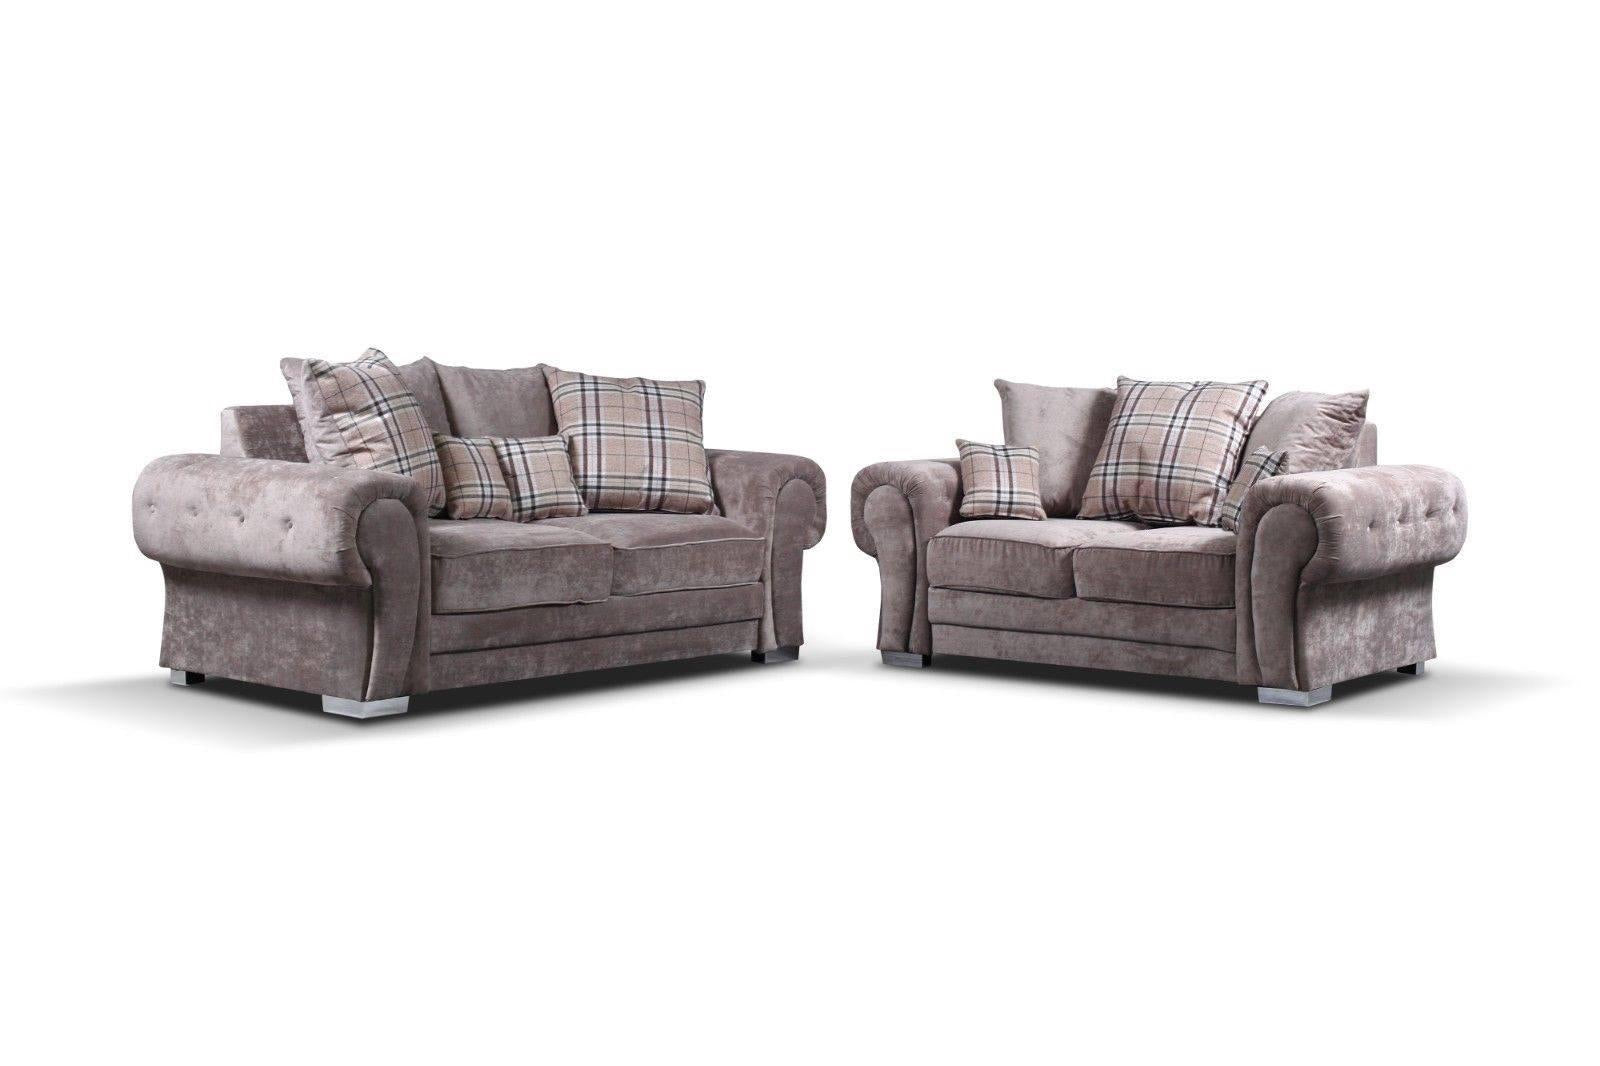 Verona 3 + 2 Sofa Set with Scattered Cushions in Mink